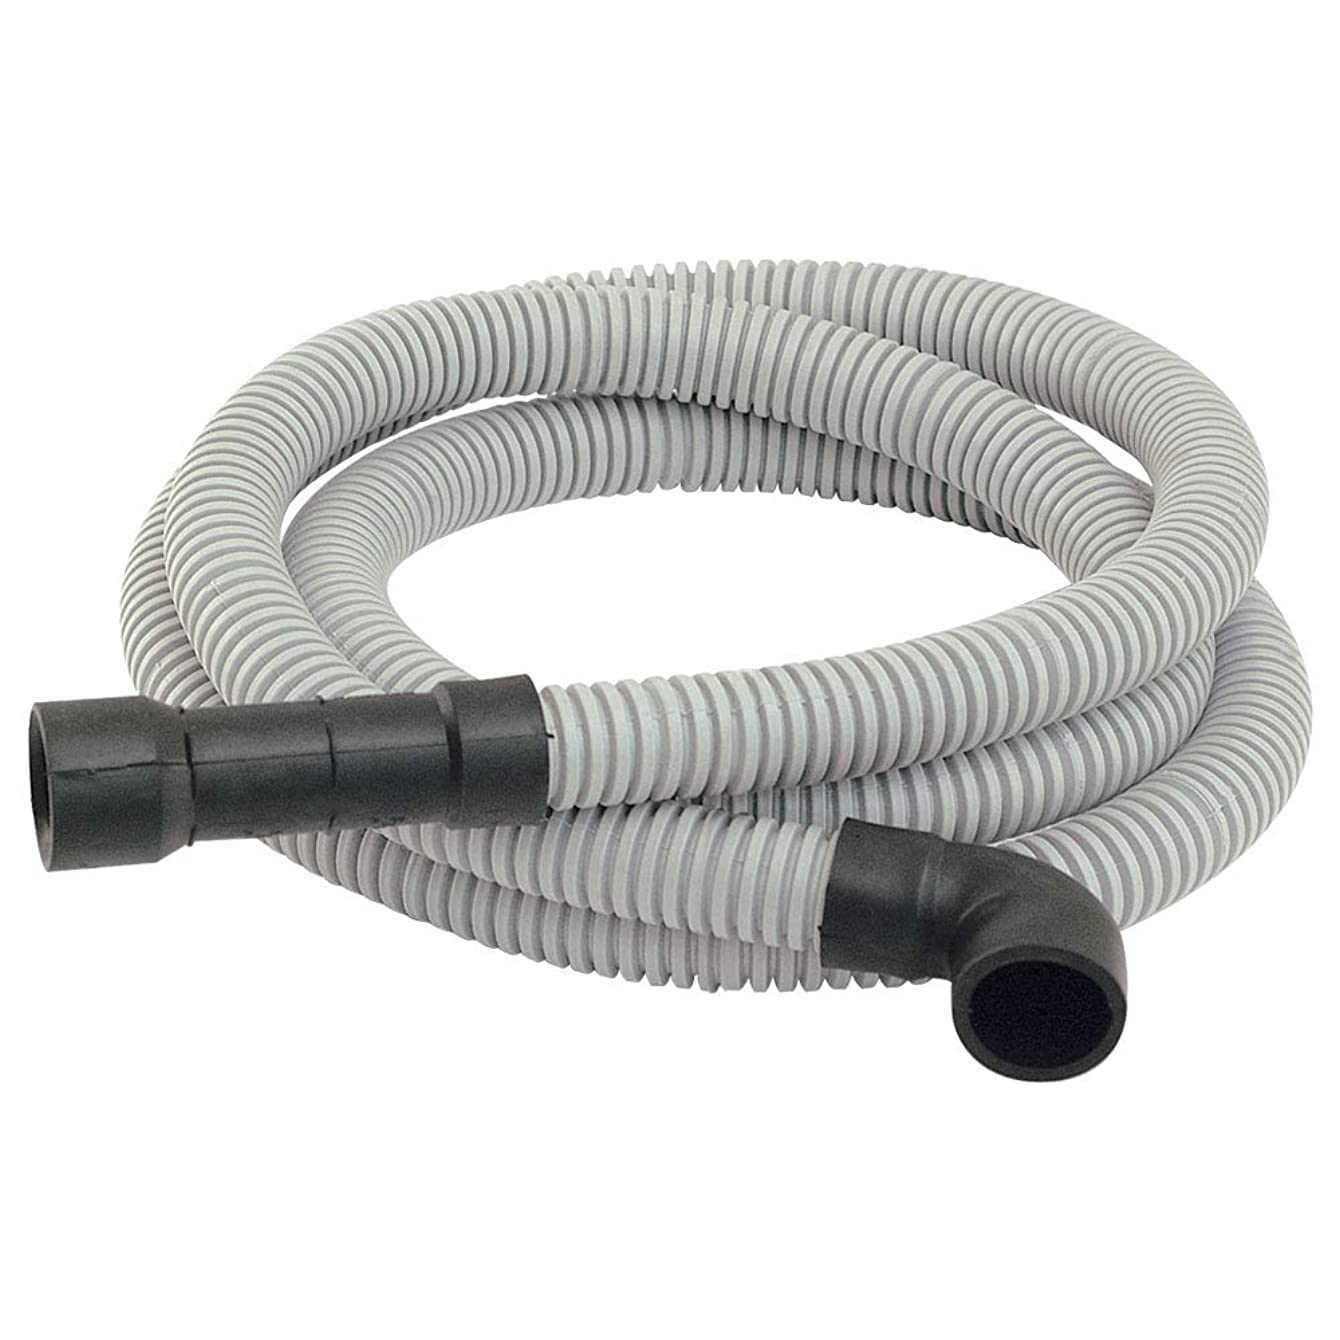 Eastman 91218 Universal-Fit Dishwasher Discharge Hose, 8 Ft Length, Grey, 8 Feet,